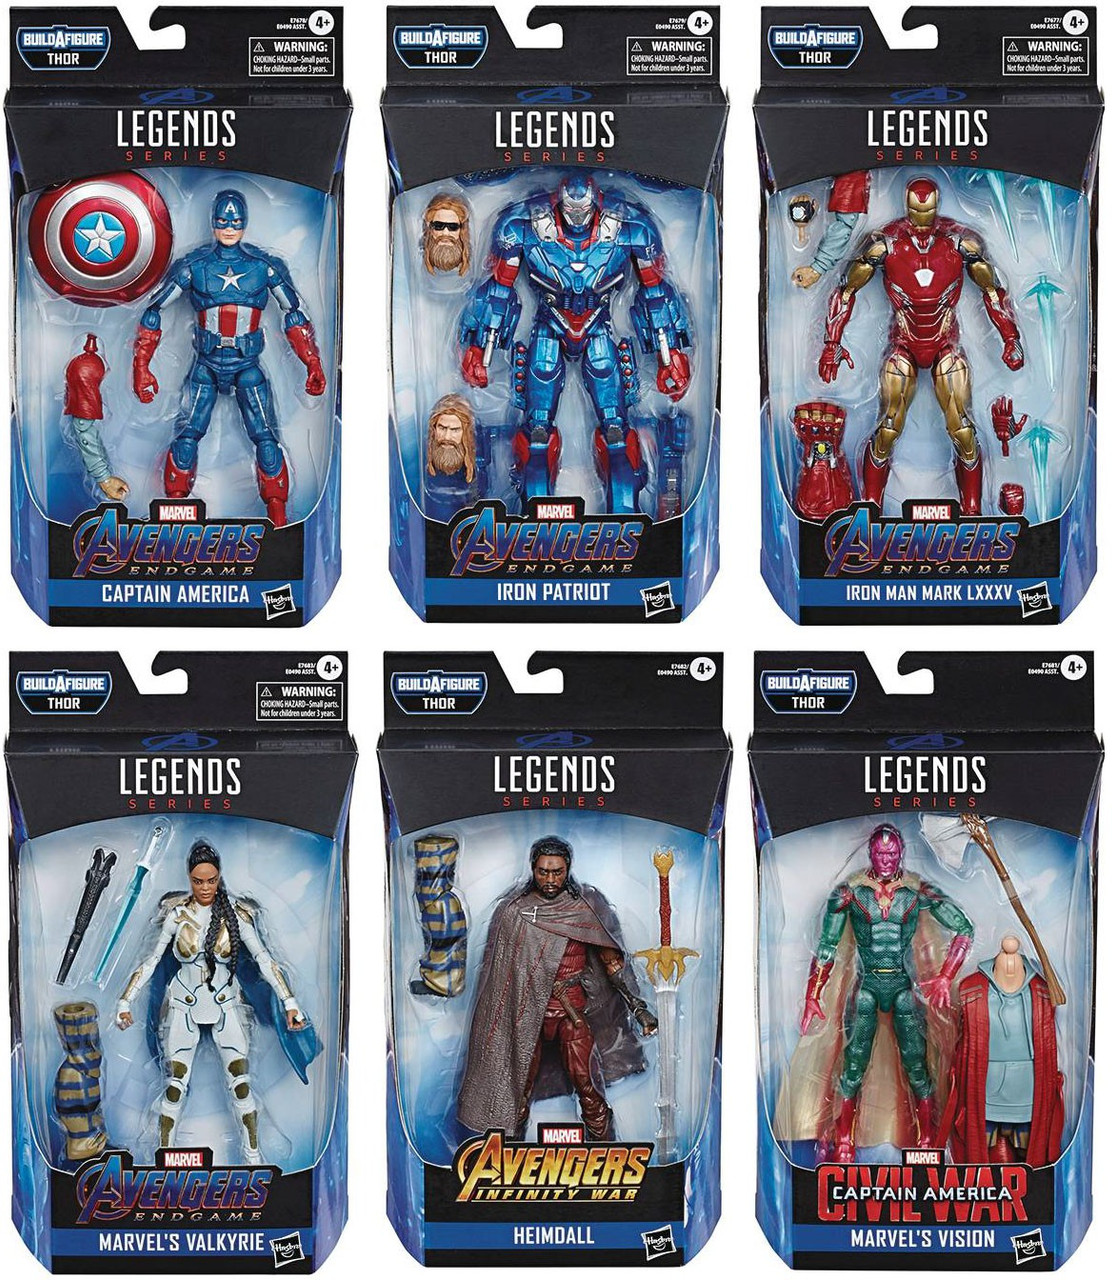 Avengers Endgame Marvel Legends Thor Series Set of 6 Action Figures  (Pre-Order ships March)